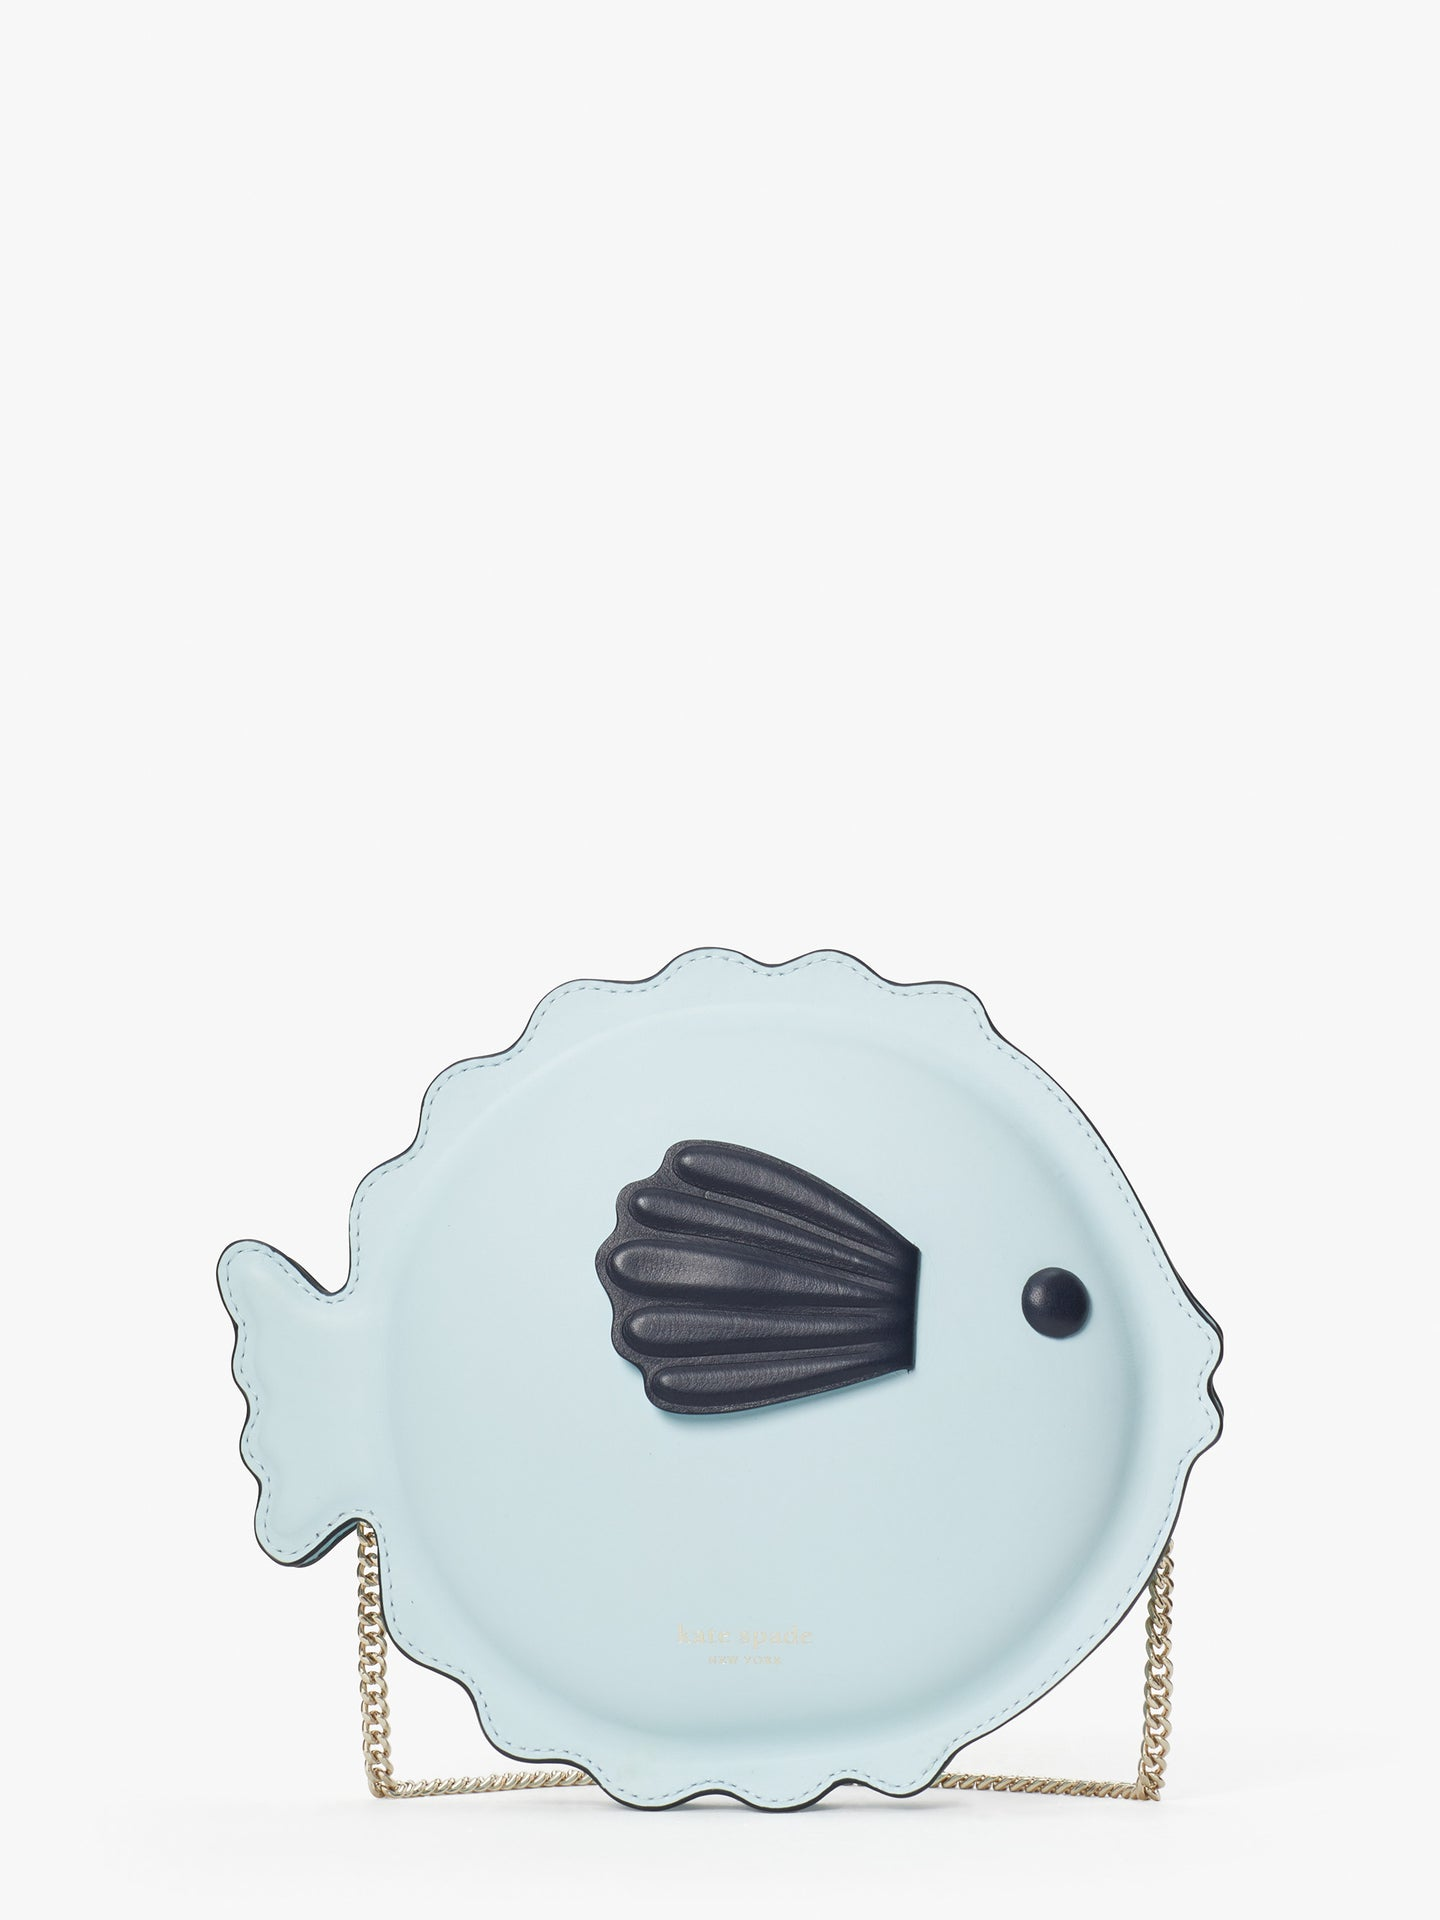 PUFFY PUFFER FISH CROSSBODY